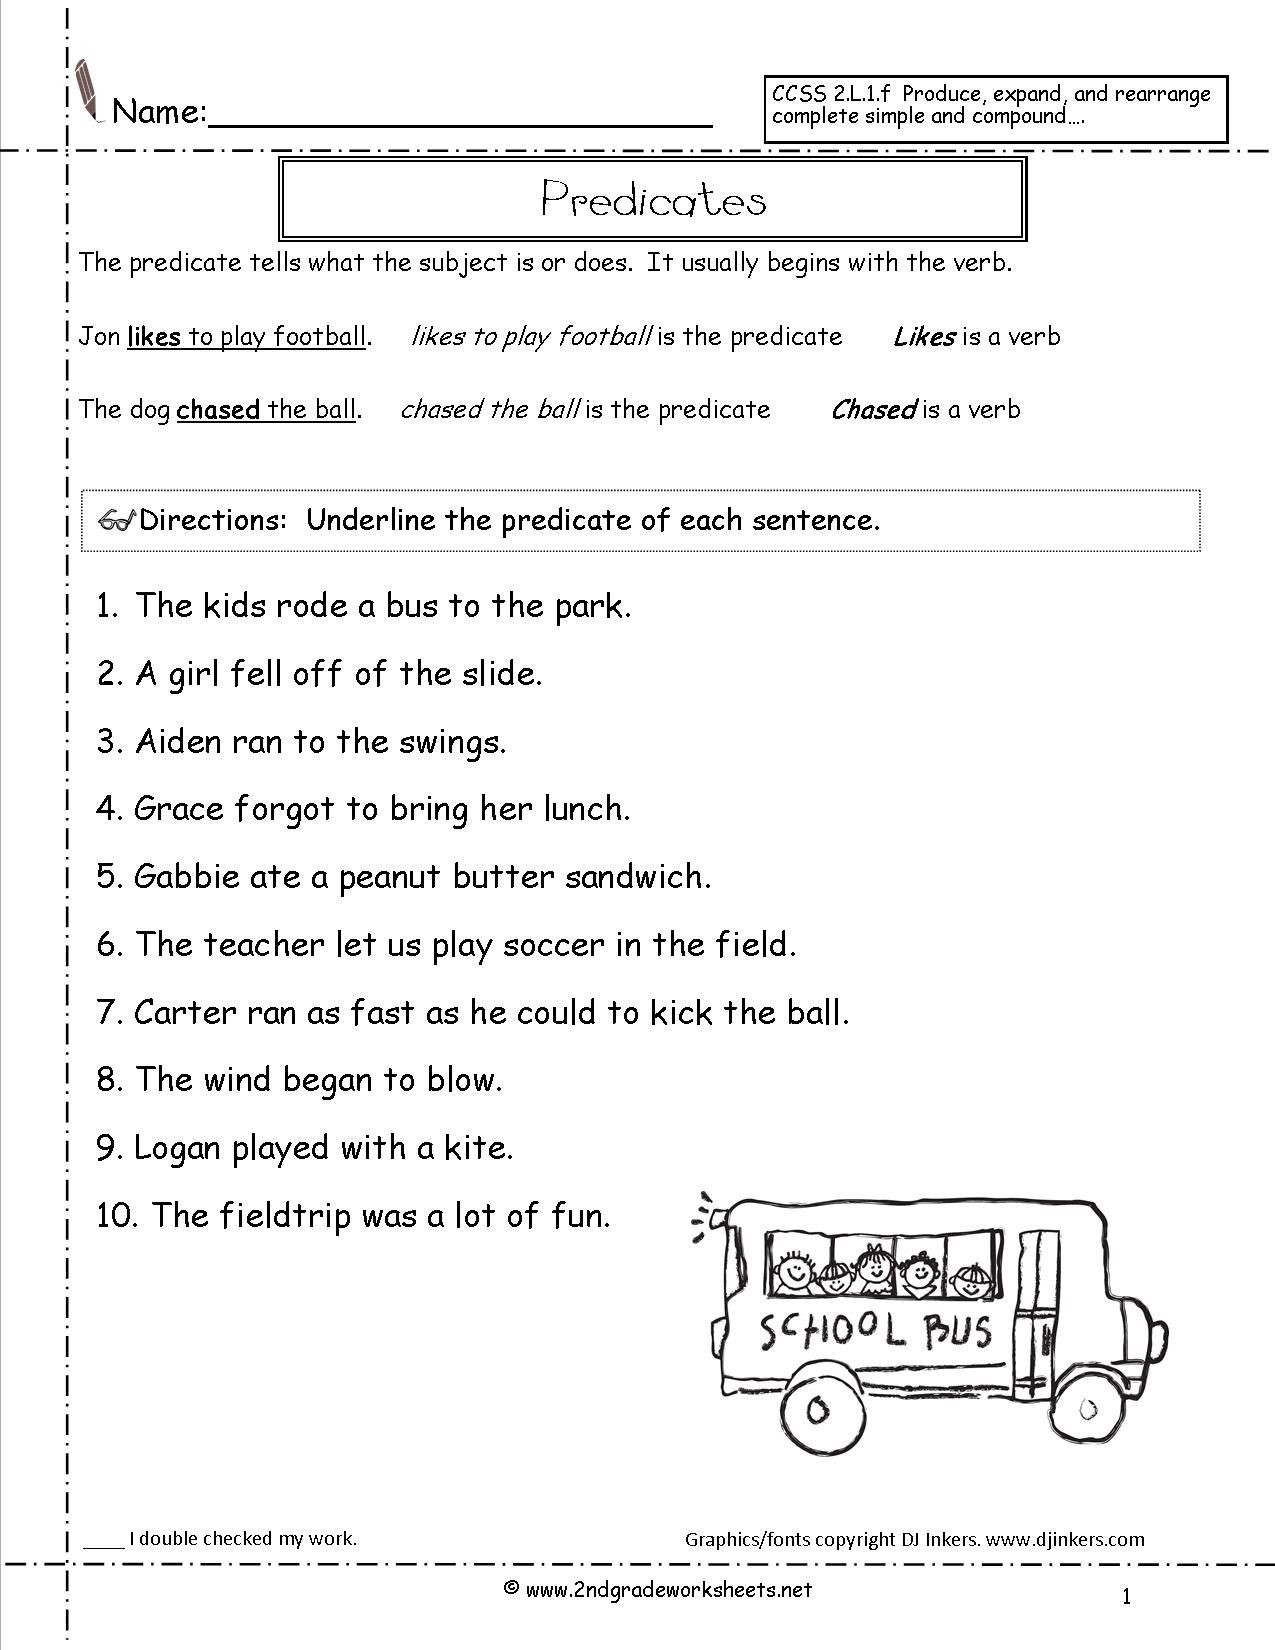 Simple Sentences Worksheet 3rd Grade Subject and Predicate Sentences Worksheets for 3rd